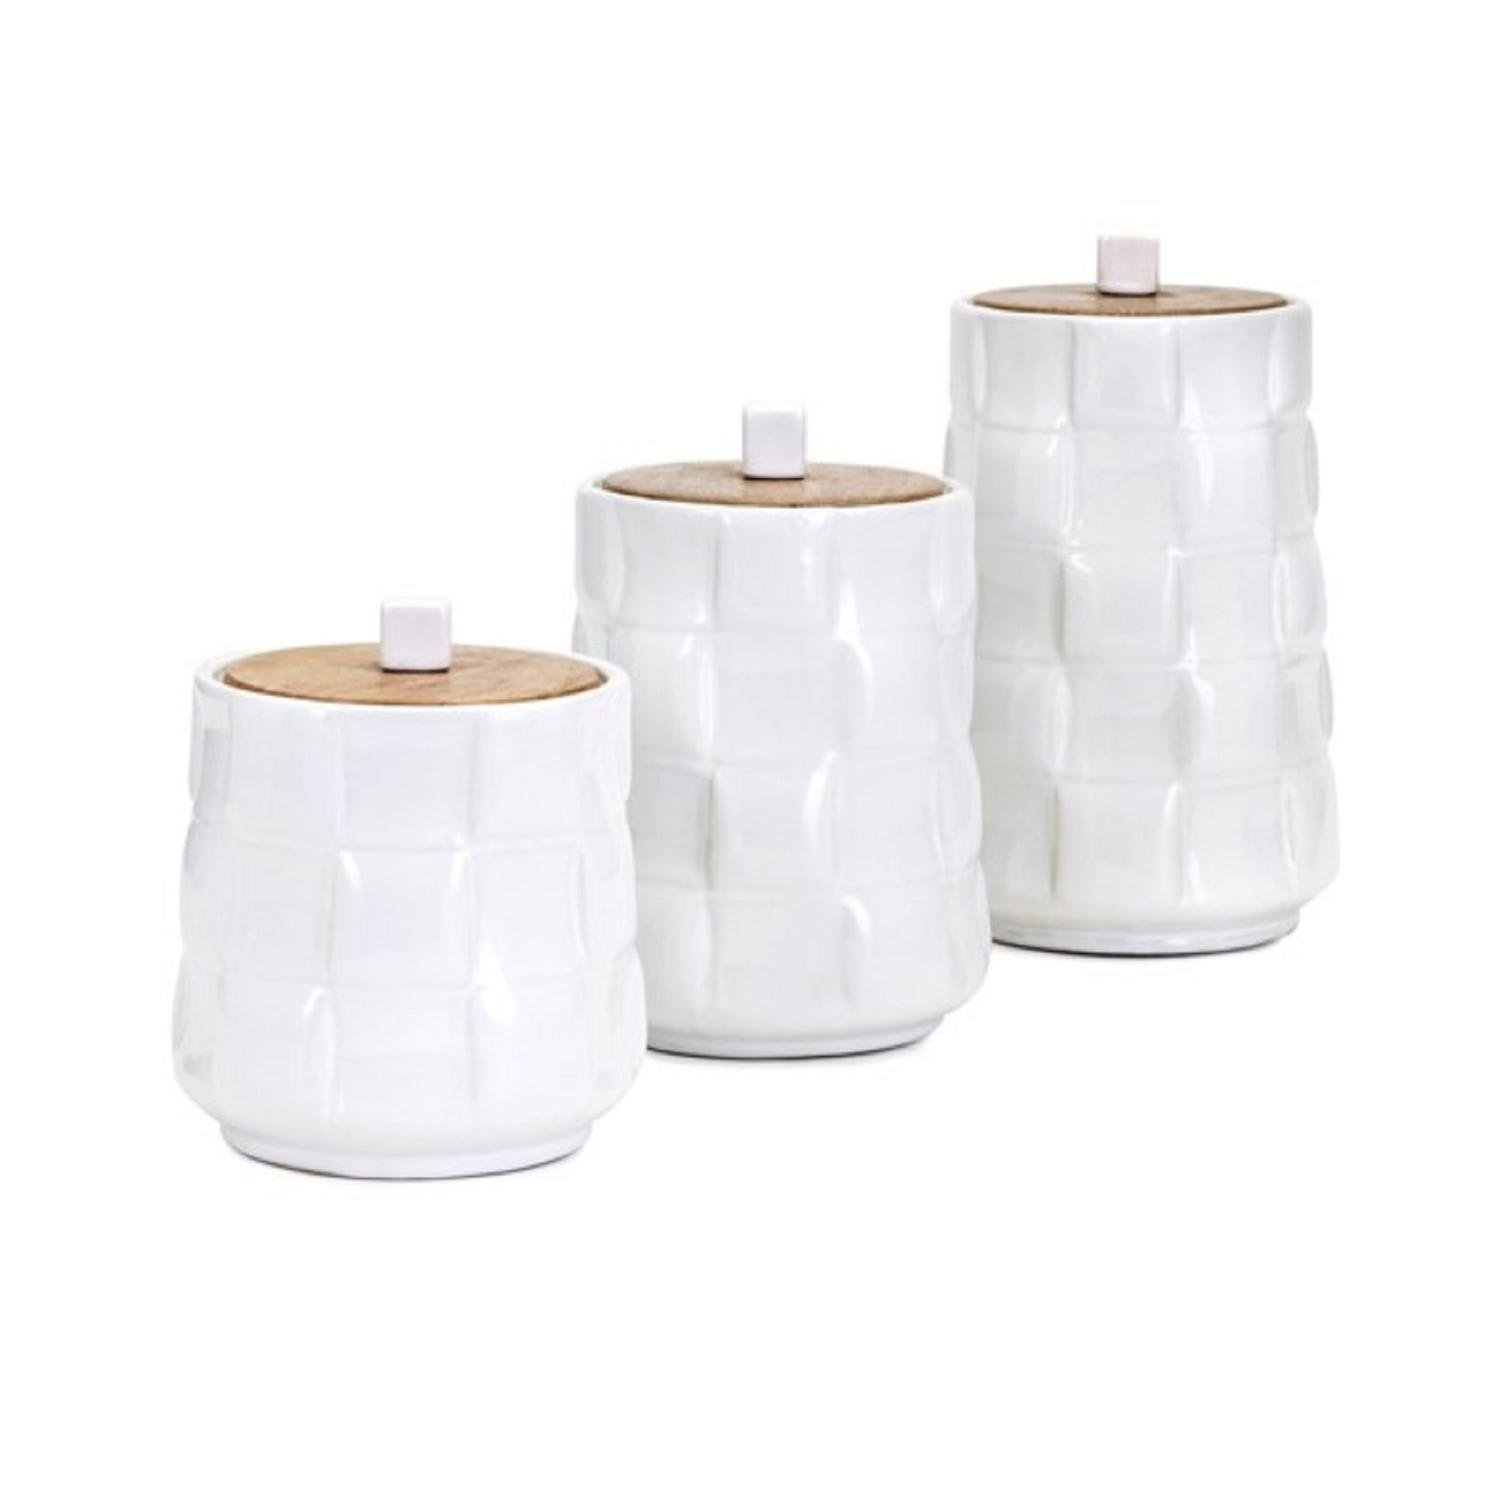 Set of 3 Milky White Cylindrical Canisters with Cube Shaped Lid Lifts and Glaze Finish 8.5''